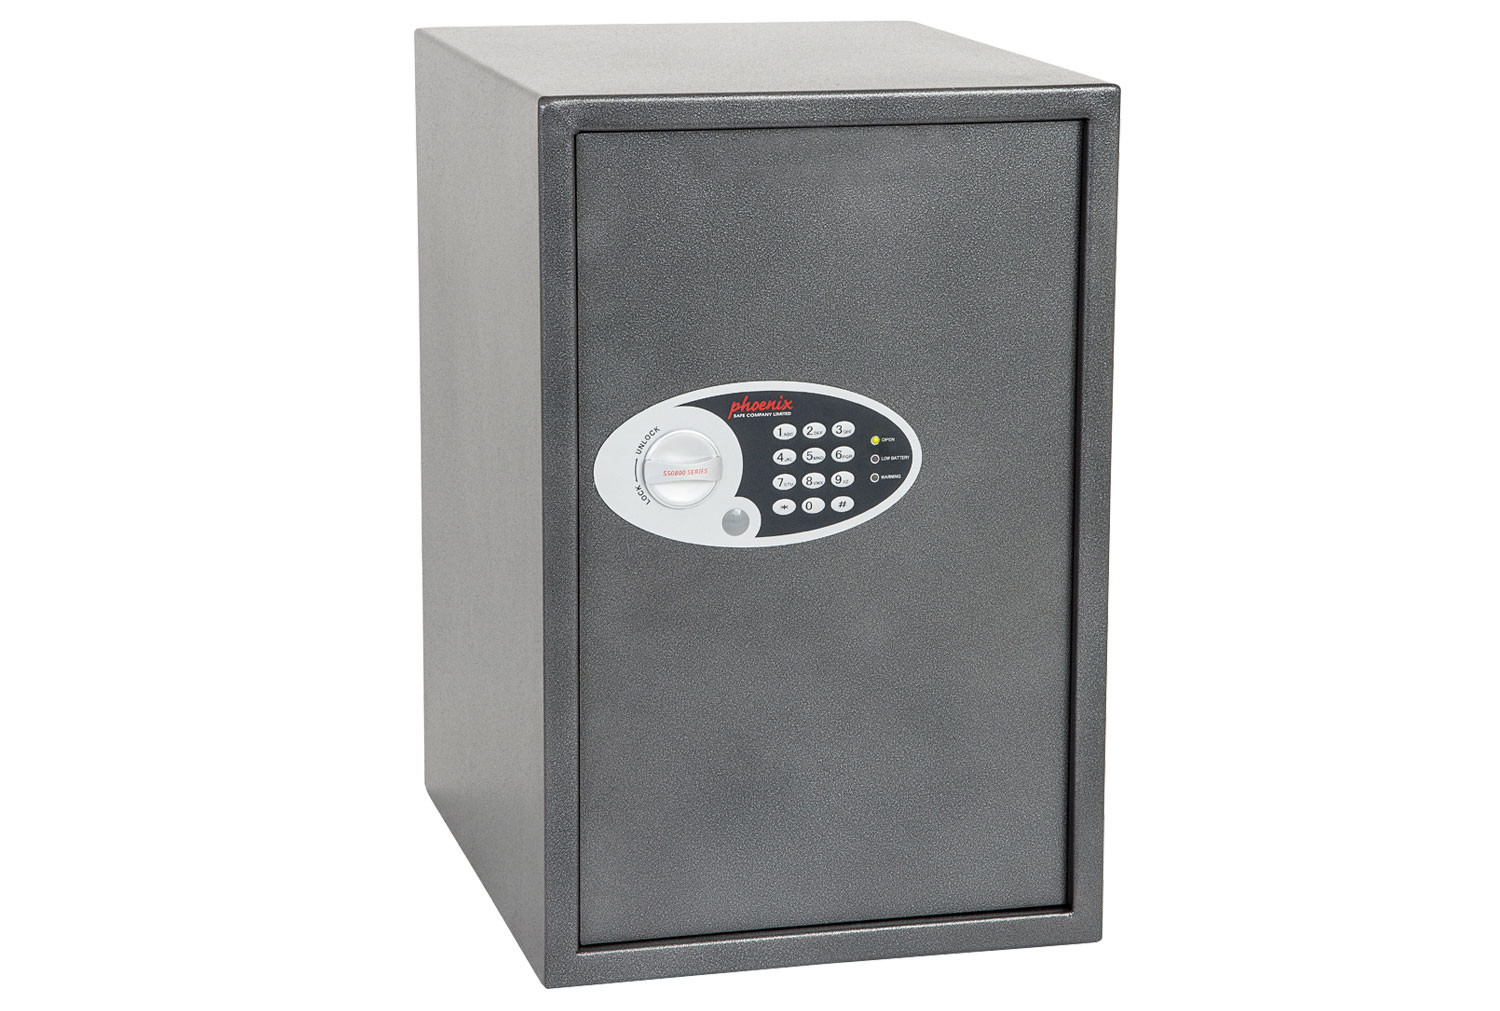 Phoenix Vela SS0805E Home Office Safe With Electronic Lock (88ltrs)